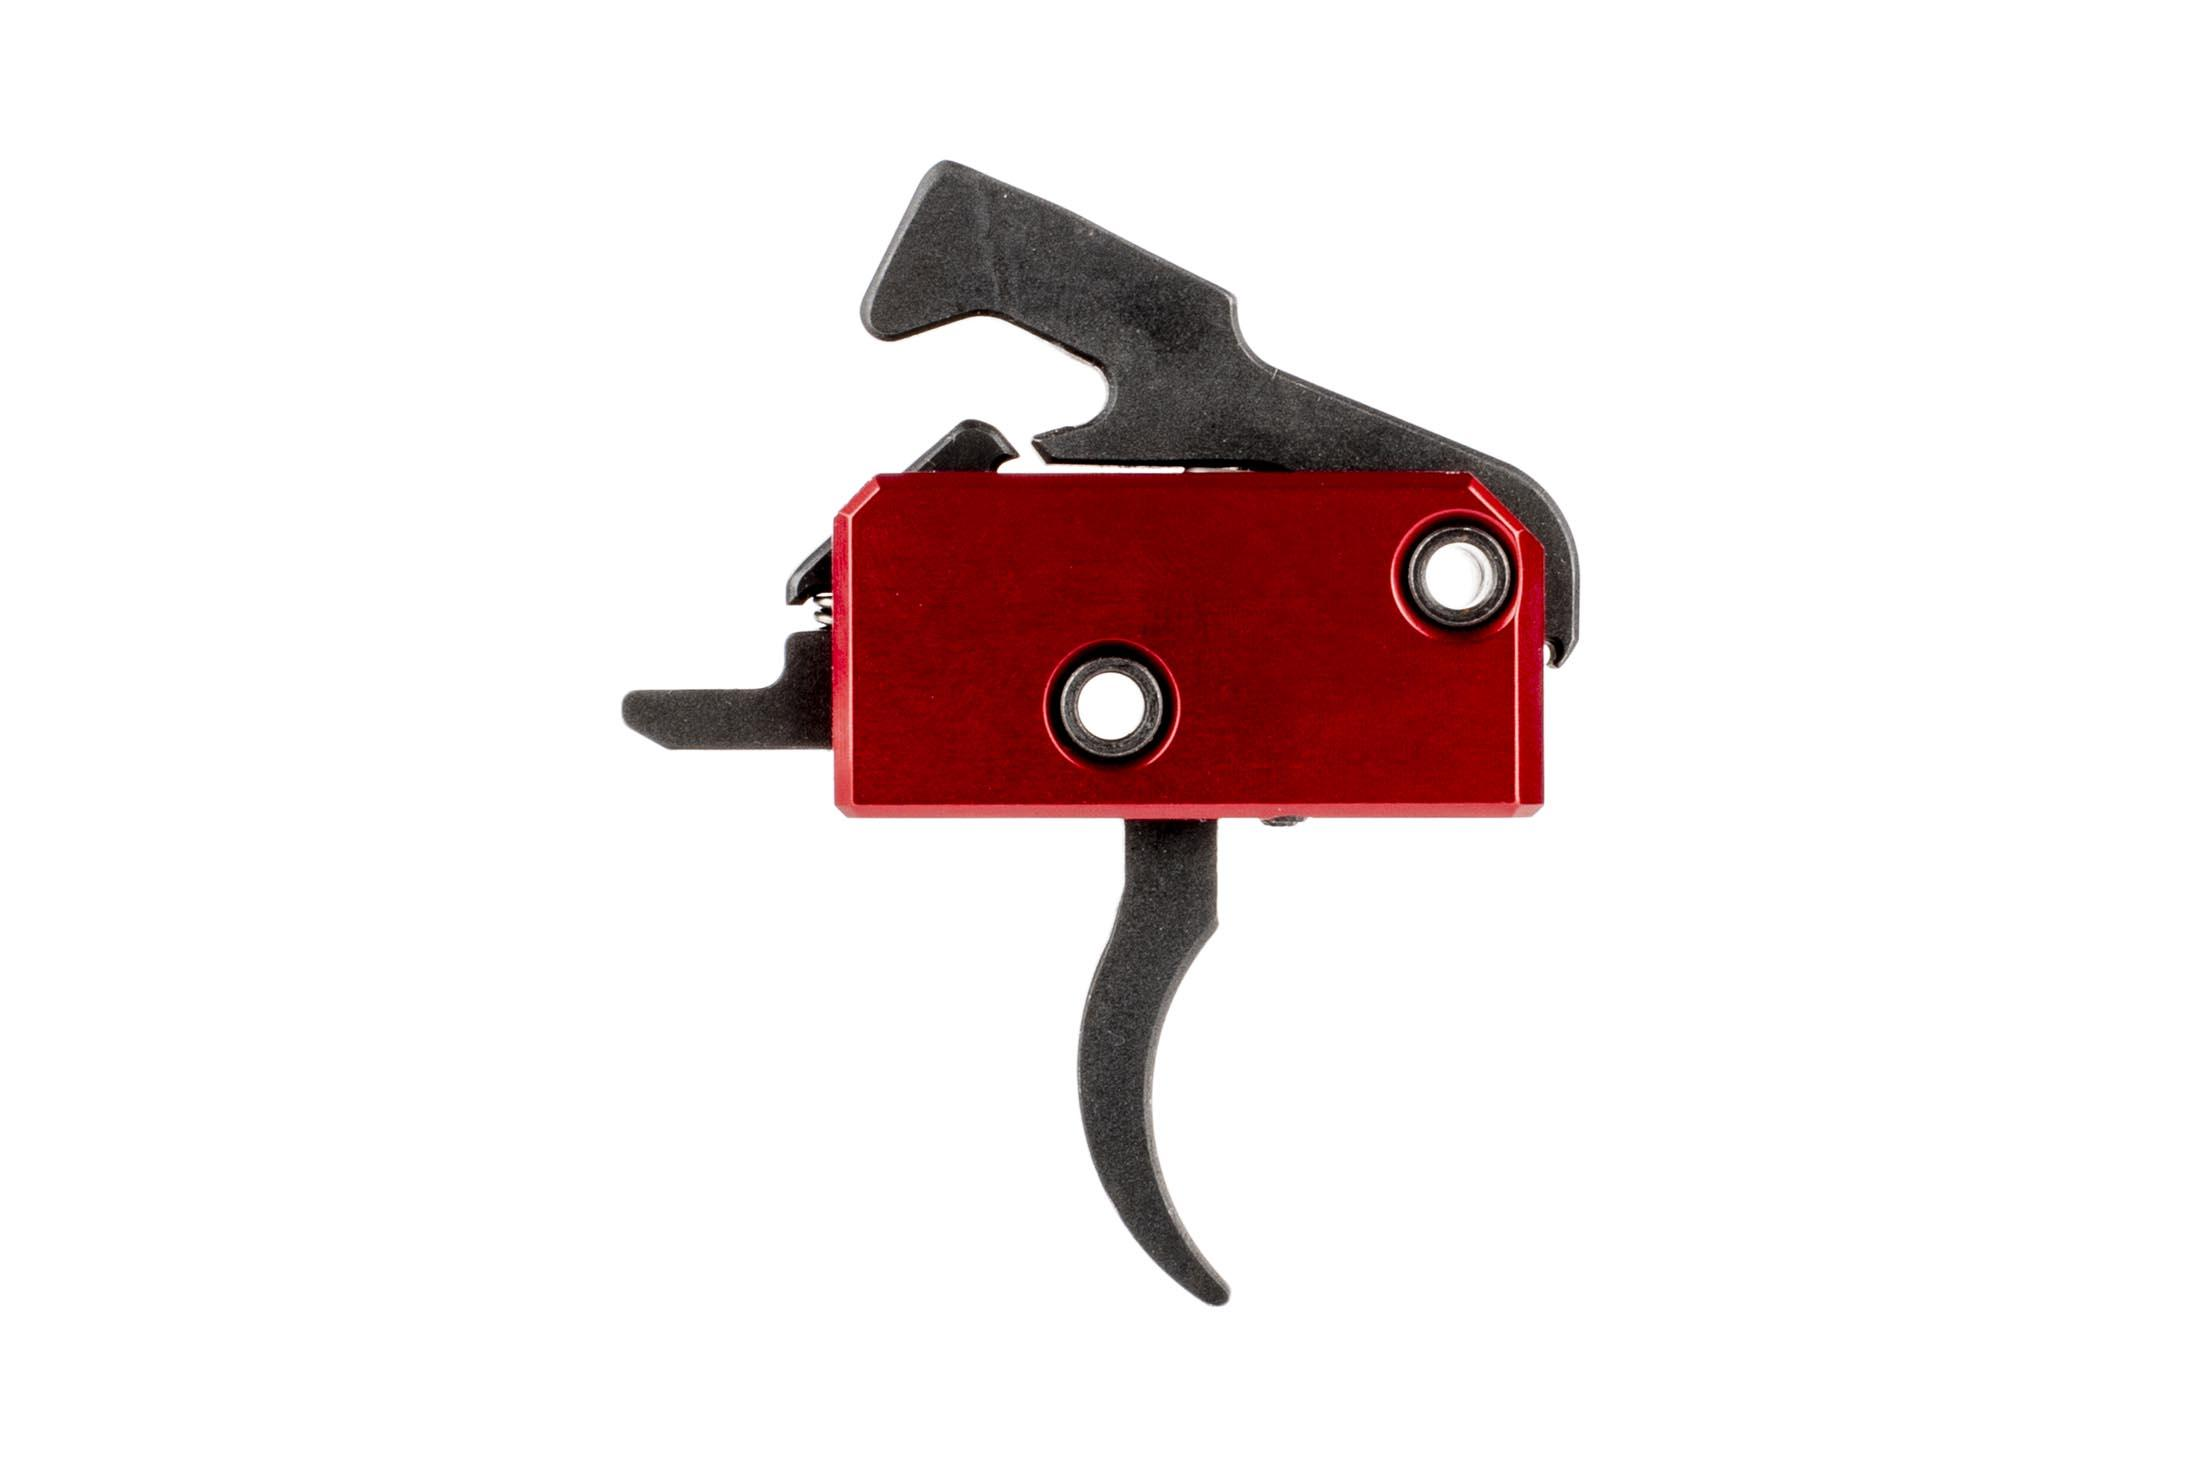 The Rise Armament Super Sporting Trigger features a red anodized finish exclusive to Primary Arms